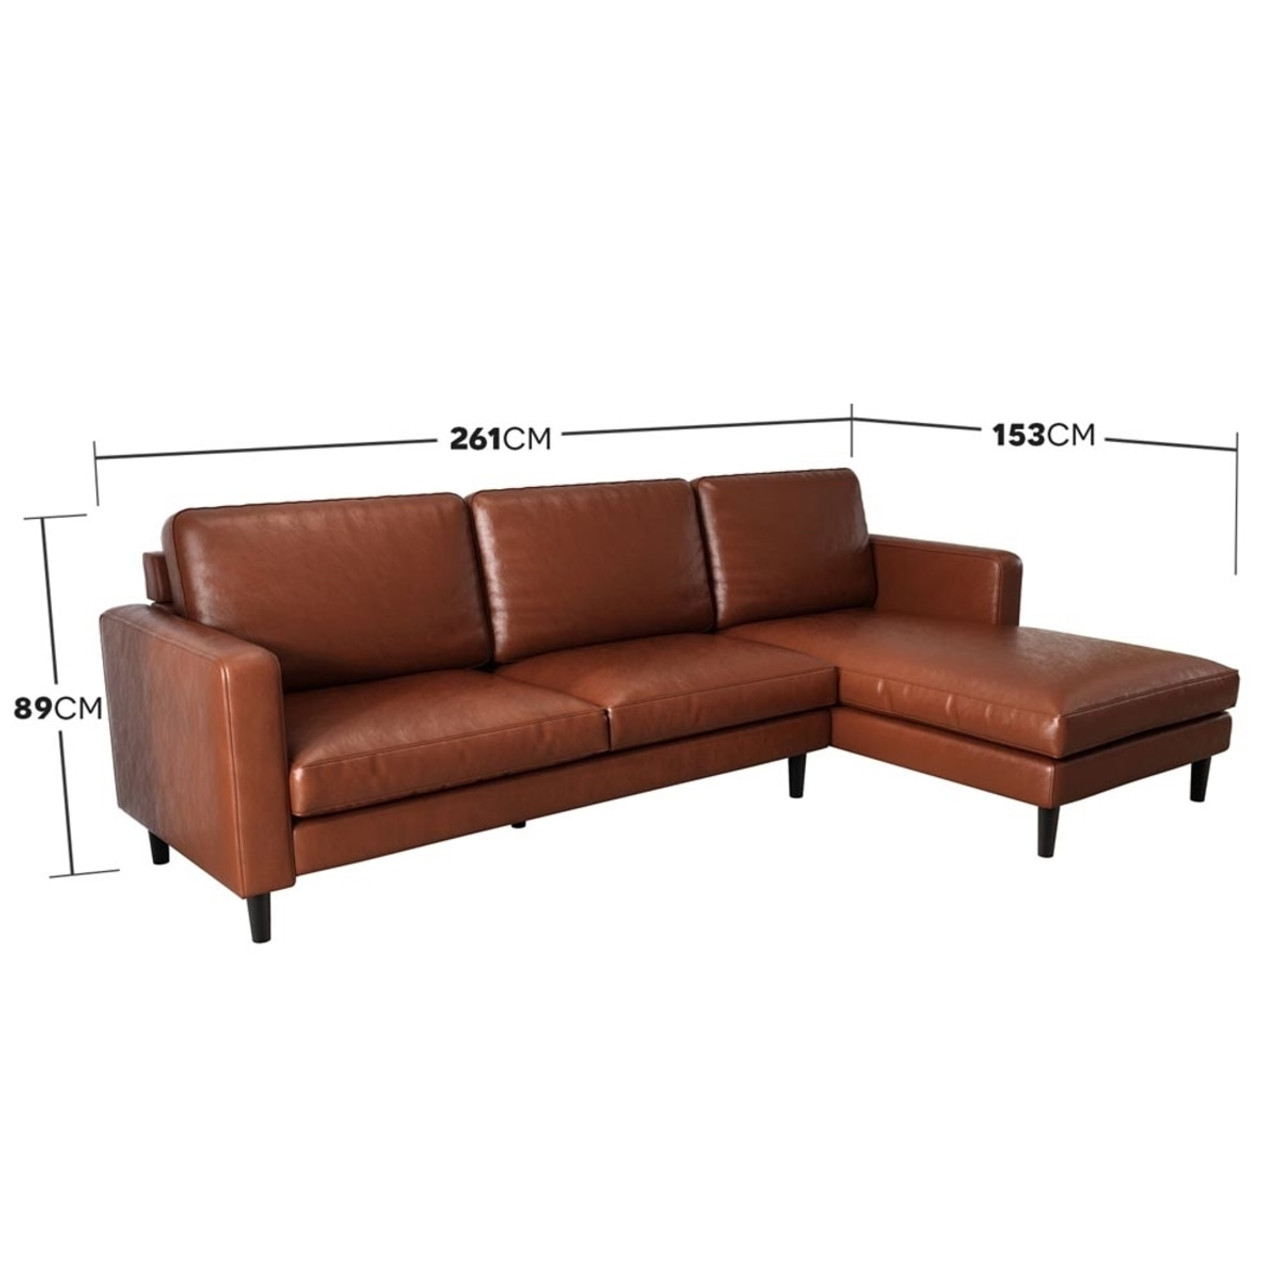 Nornas 3 Seater Pu Leather Sofa With Chaise 3 Seater Pu Leather Sofa With Chaise